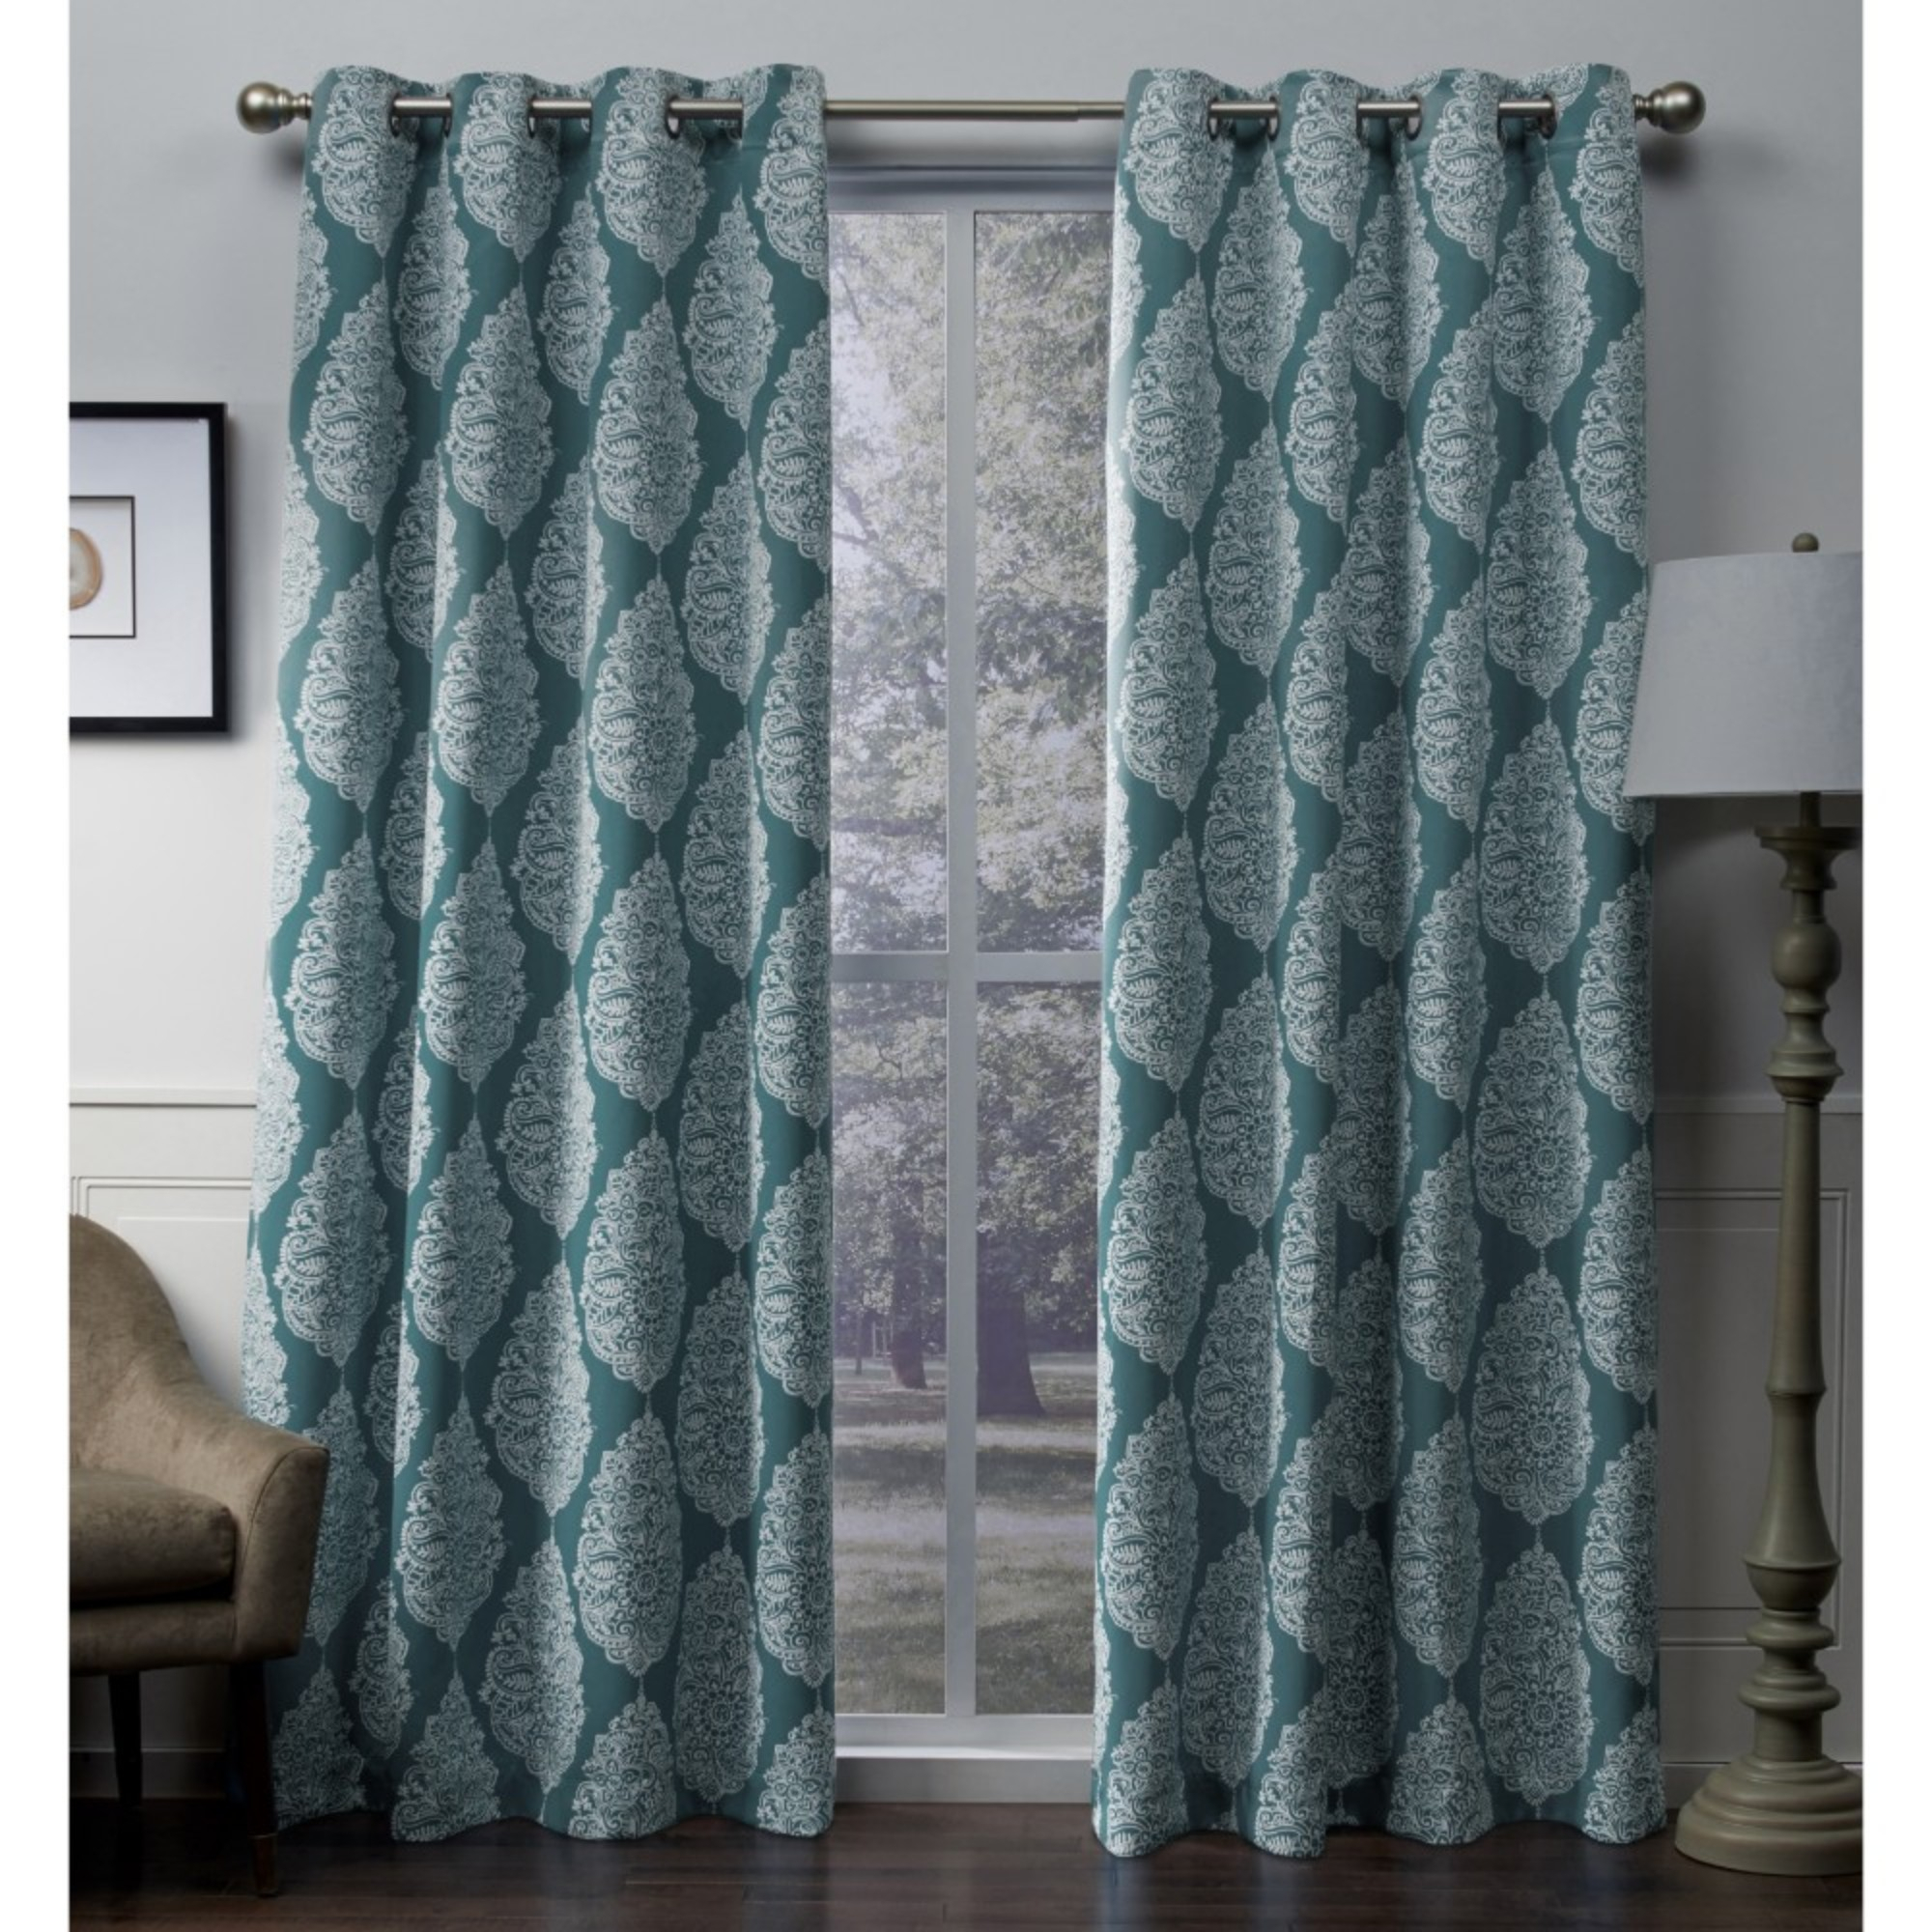 Exclusive Home Queensland Printed Medallion Woven Sateen Woven Window Curtain Panel Pair With Grommet Top With Regard To Sateen Twill Weave Insulated Blackout Window Curtain Panel Pairs (View 9 of 20)